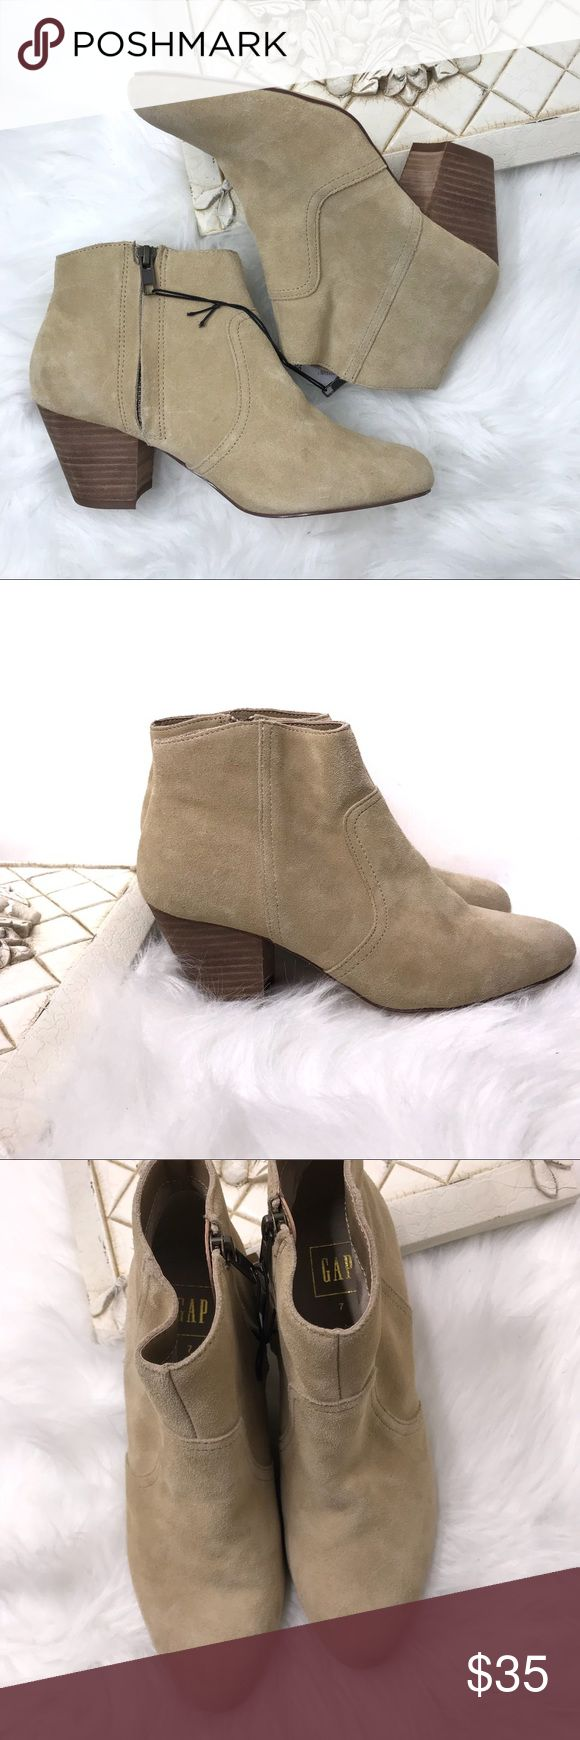 """GAP Short Khaki Booties / Ankle Boots  Size 7 GAP Short Khaki Booties / Ankle Boots  Size 7  Shoes are in new condition. Please see all images. Heel height is 2.5"""" GAP Shoes Ankle Boots & Booties"""